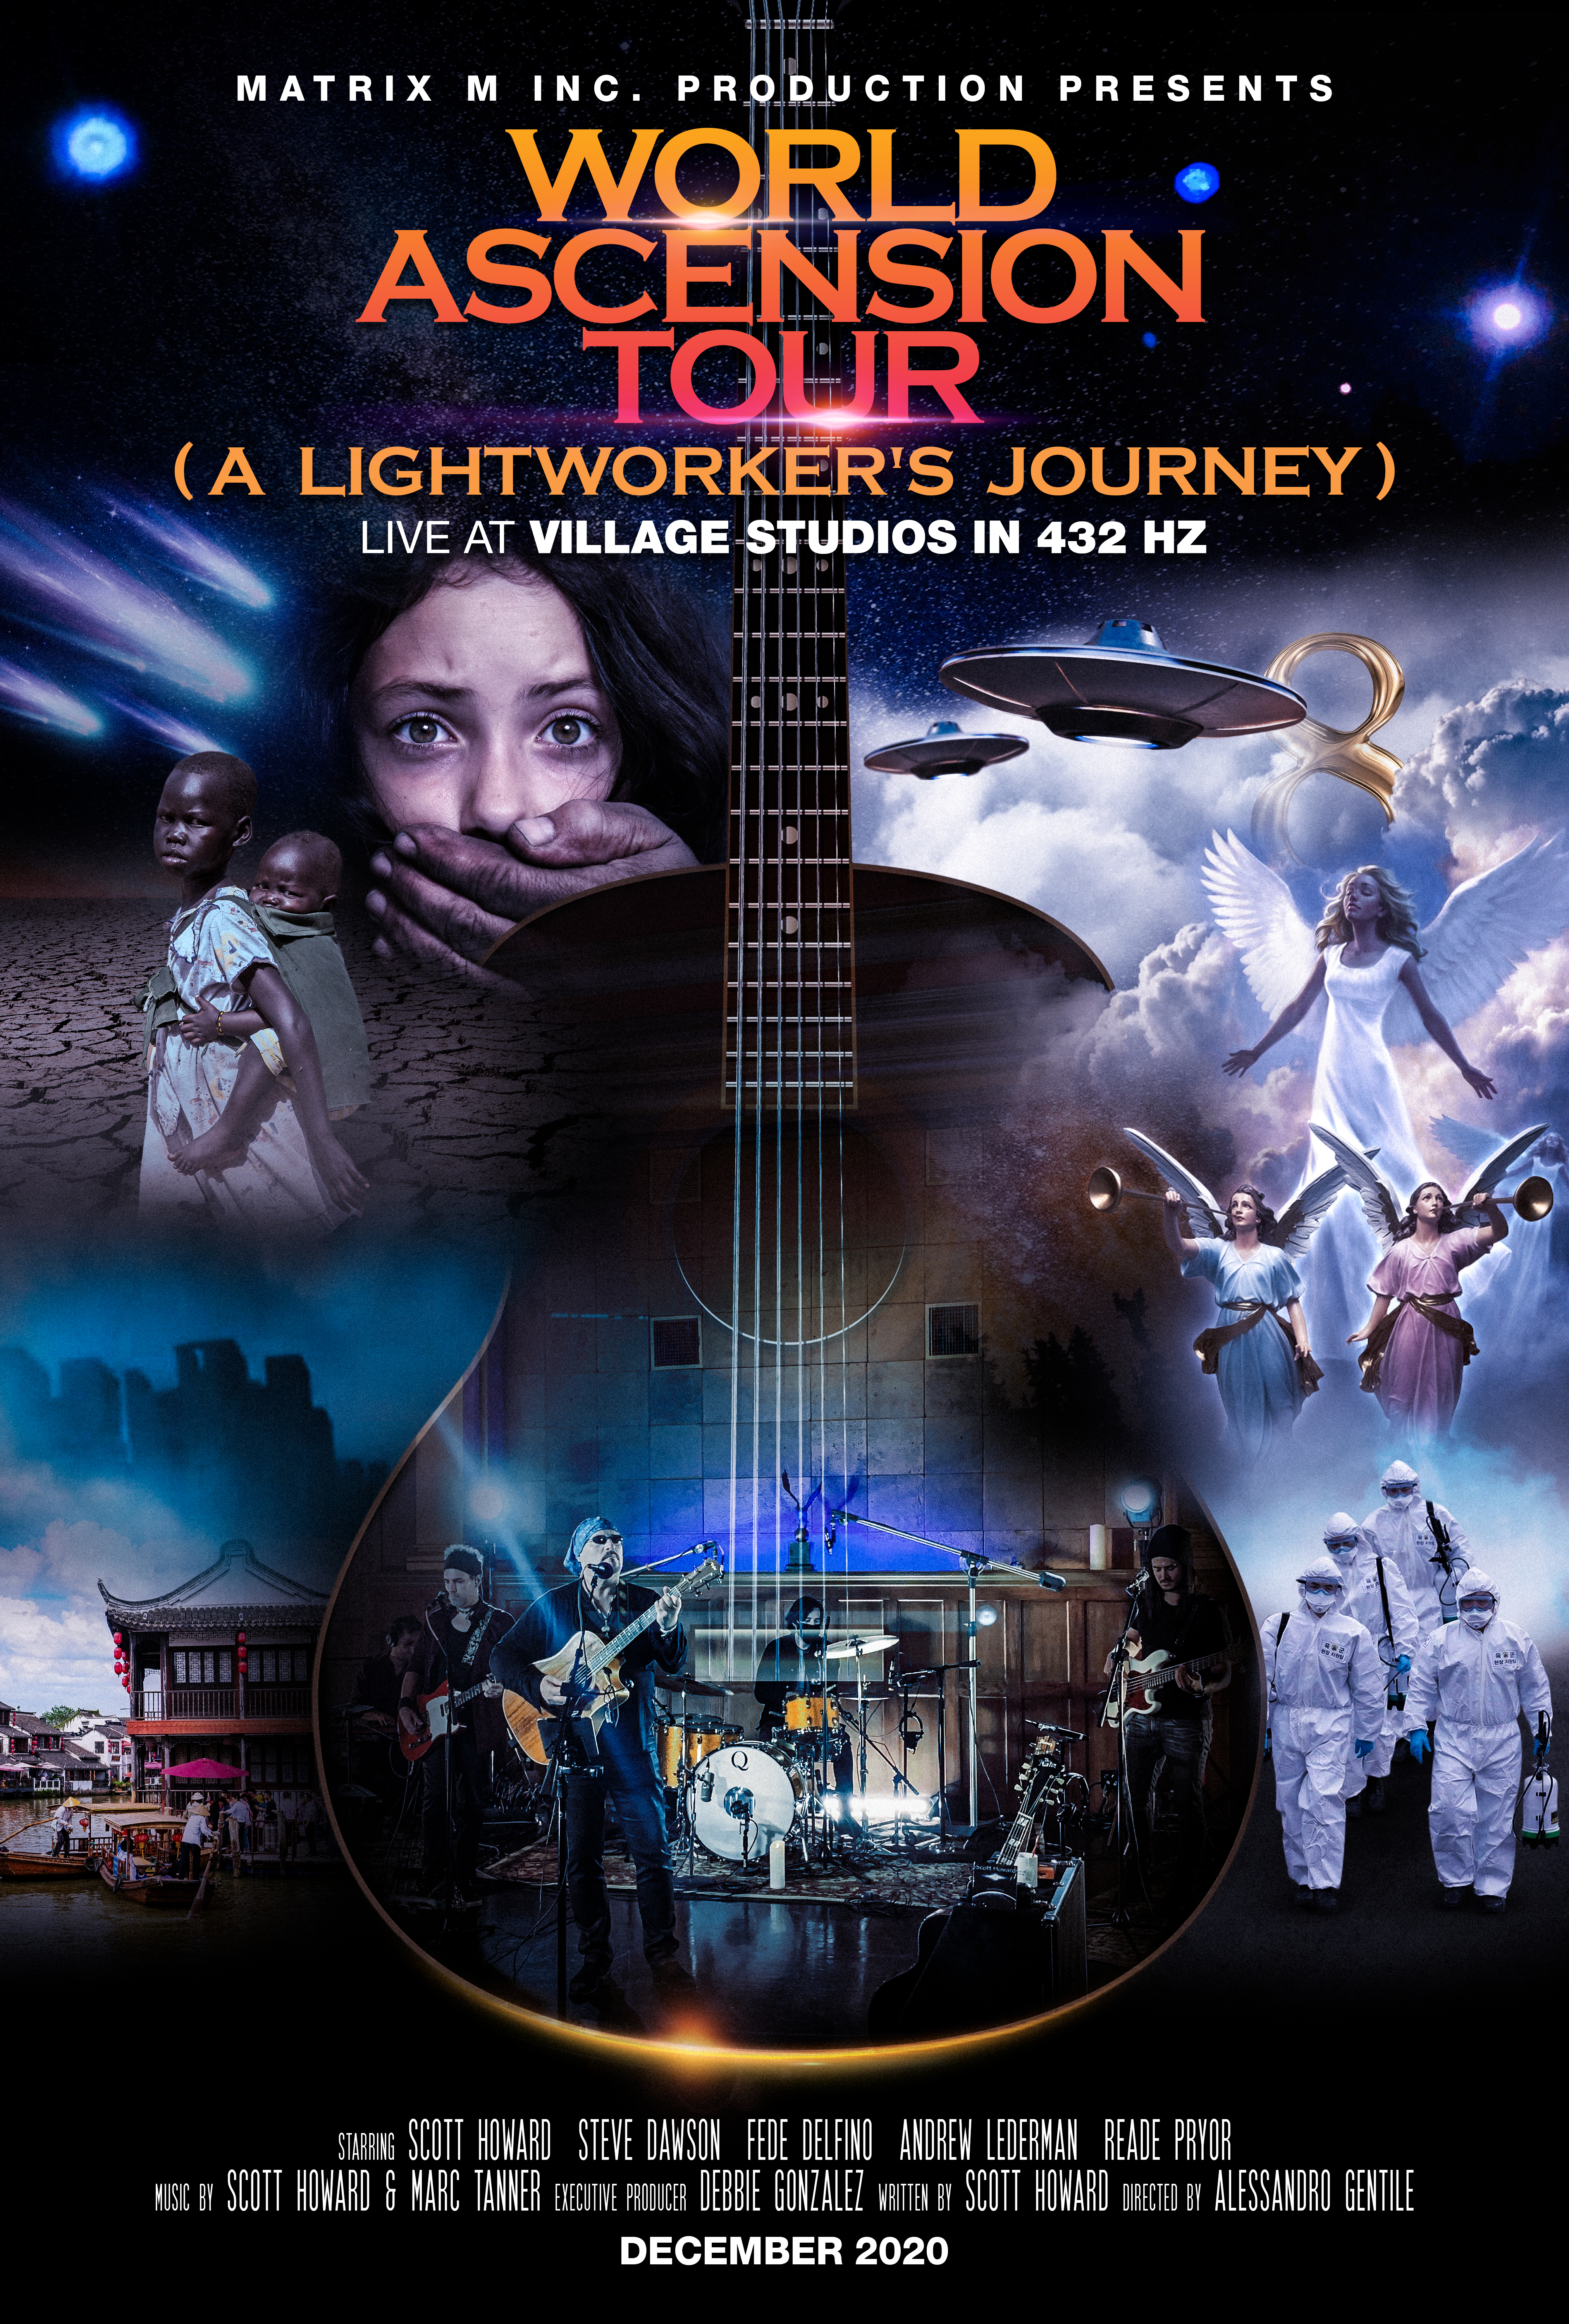 The First Concert Film of its Kind in 432 Hz by Scott Howard